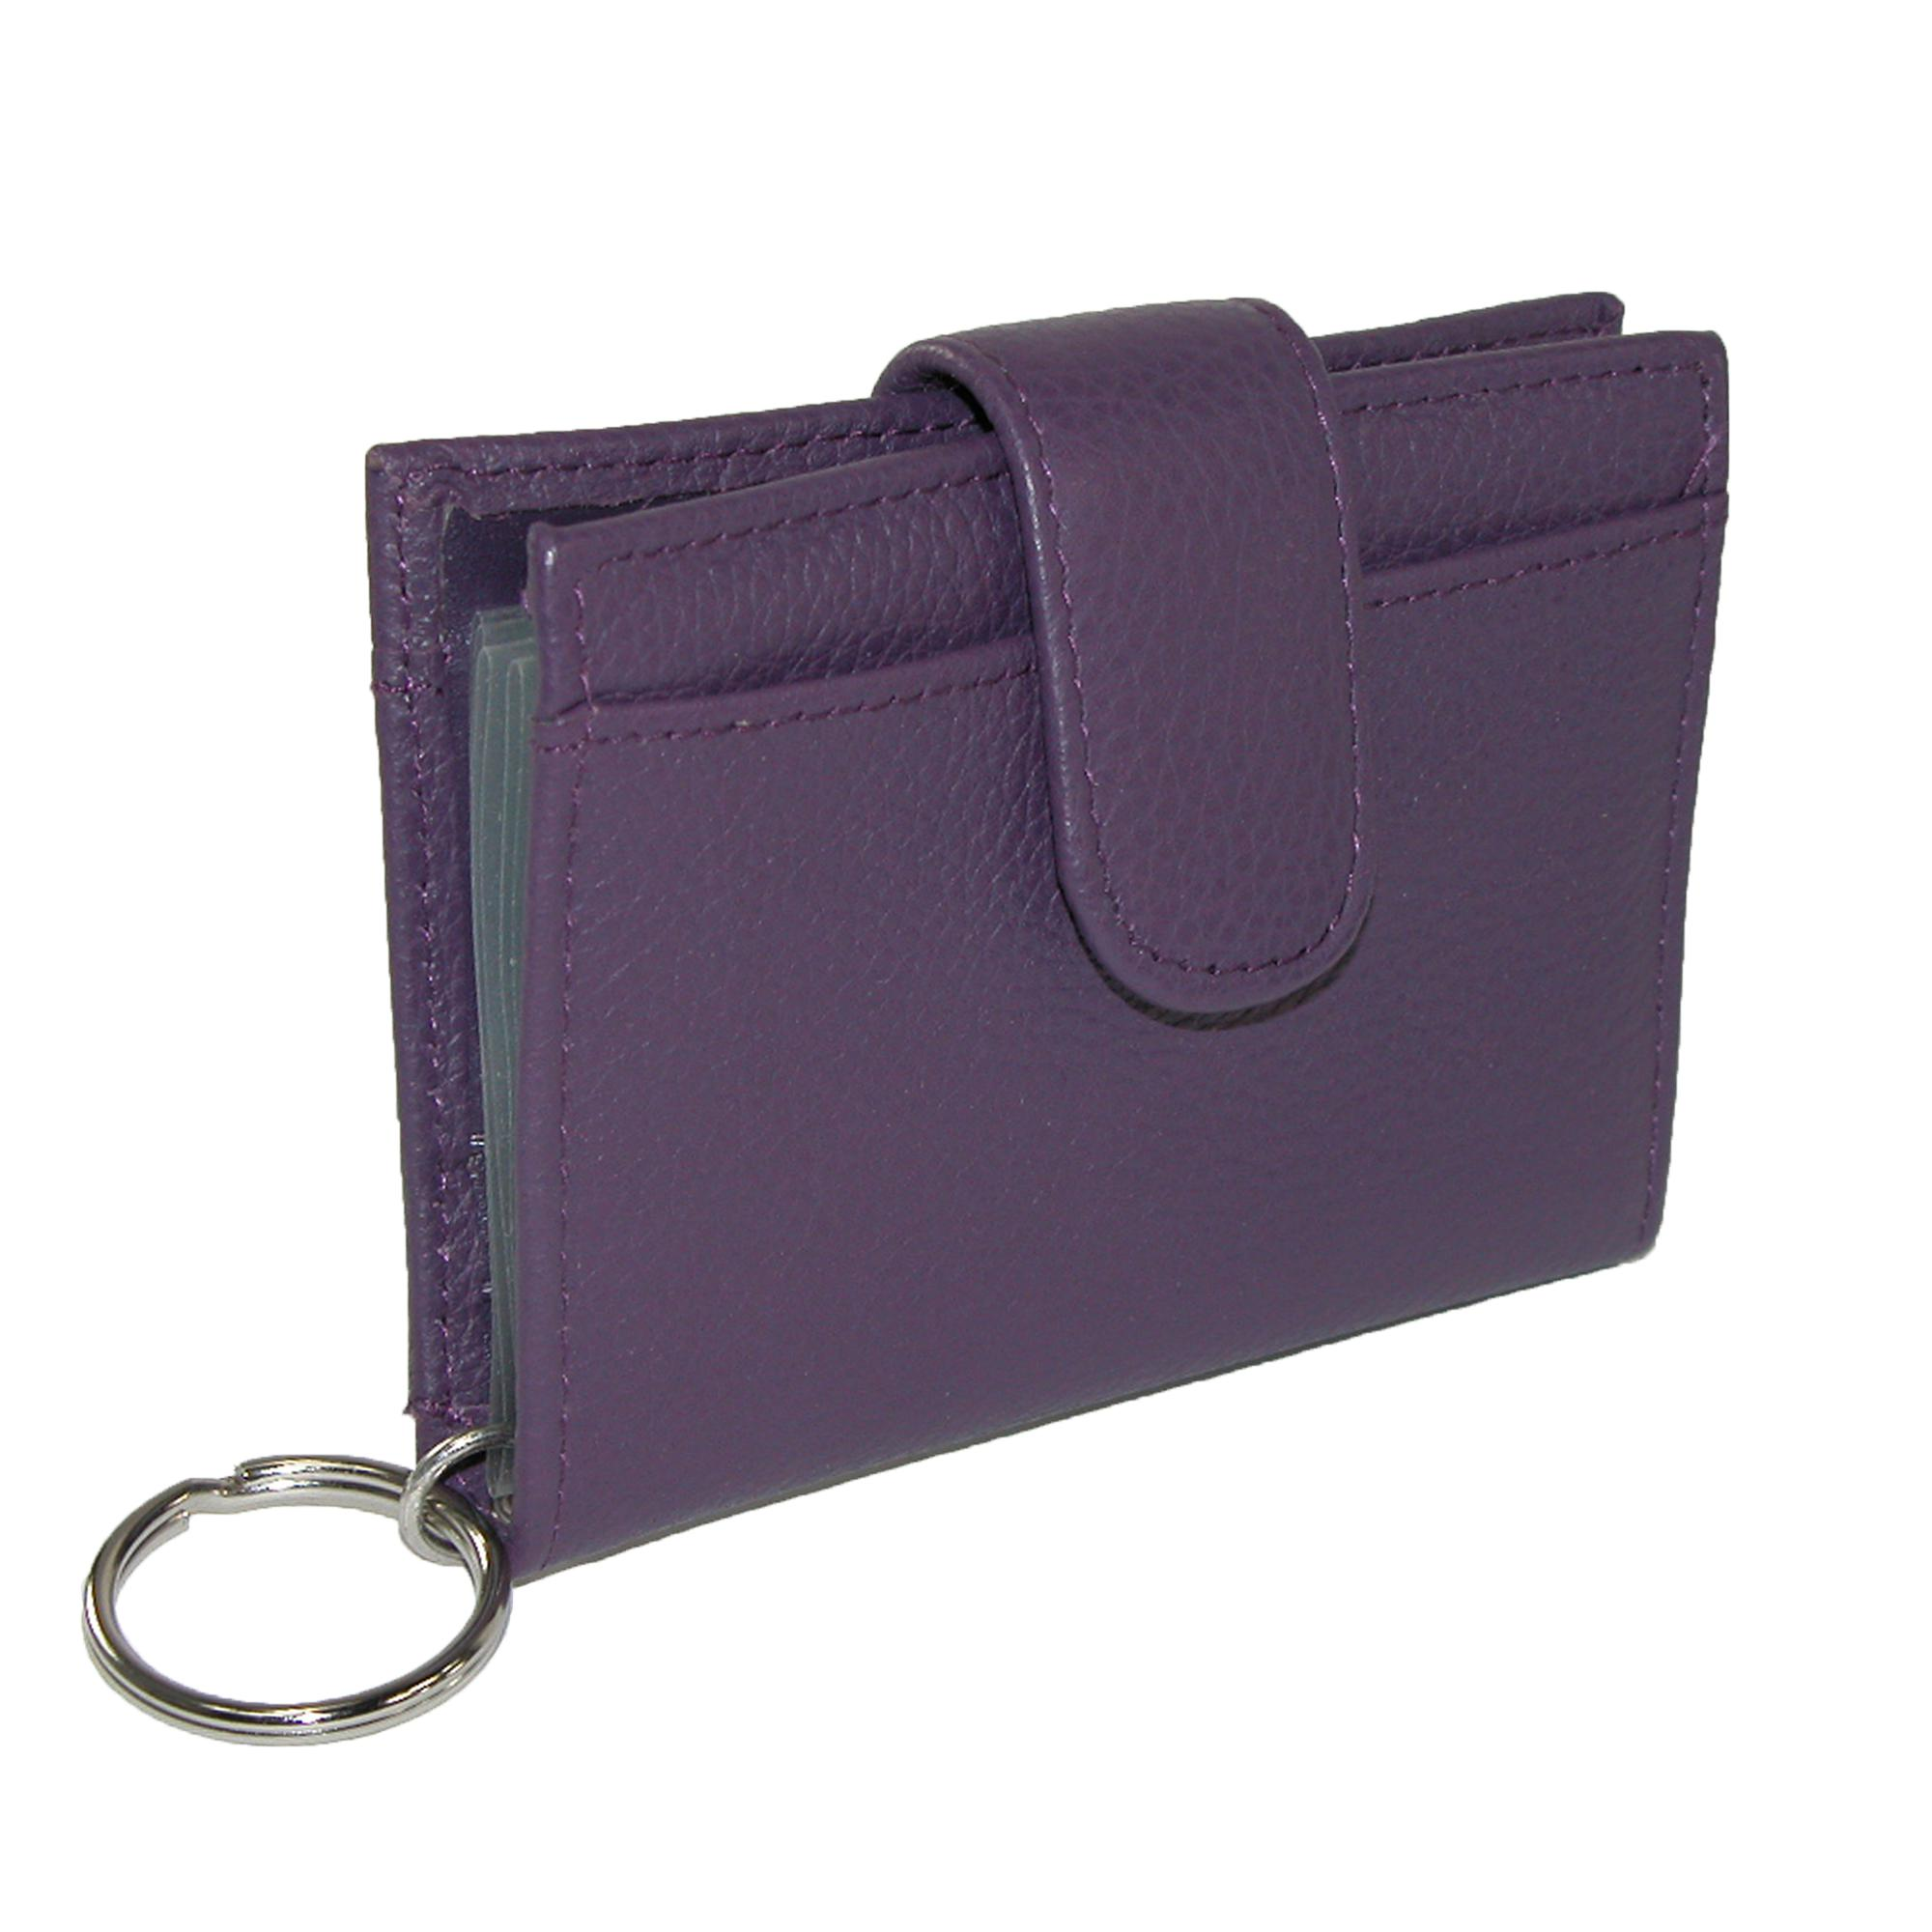 Buxton_Women's_Leather_Key_Chain_ID_Card_Case_Wallet_-